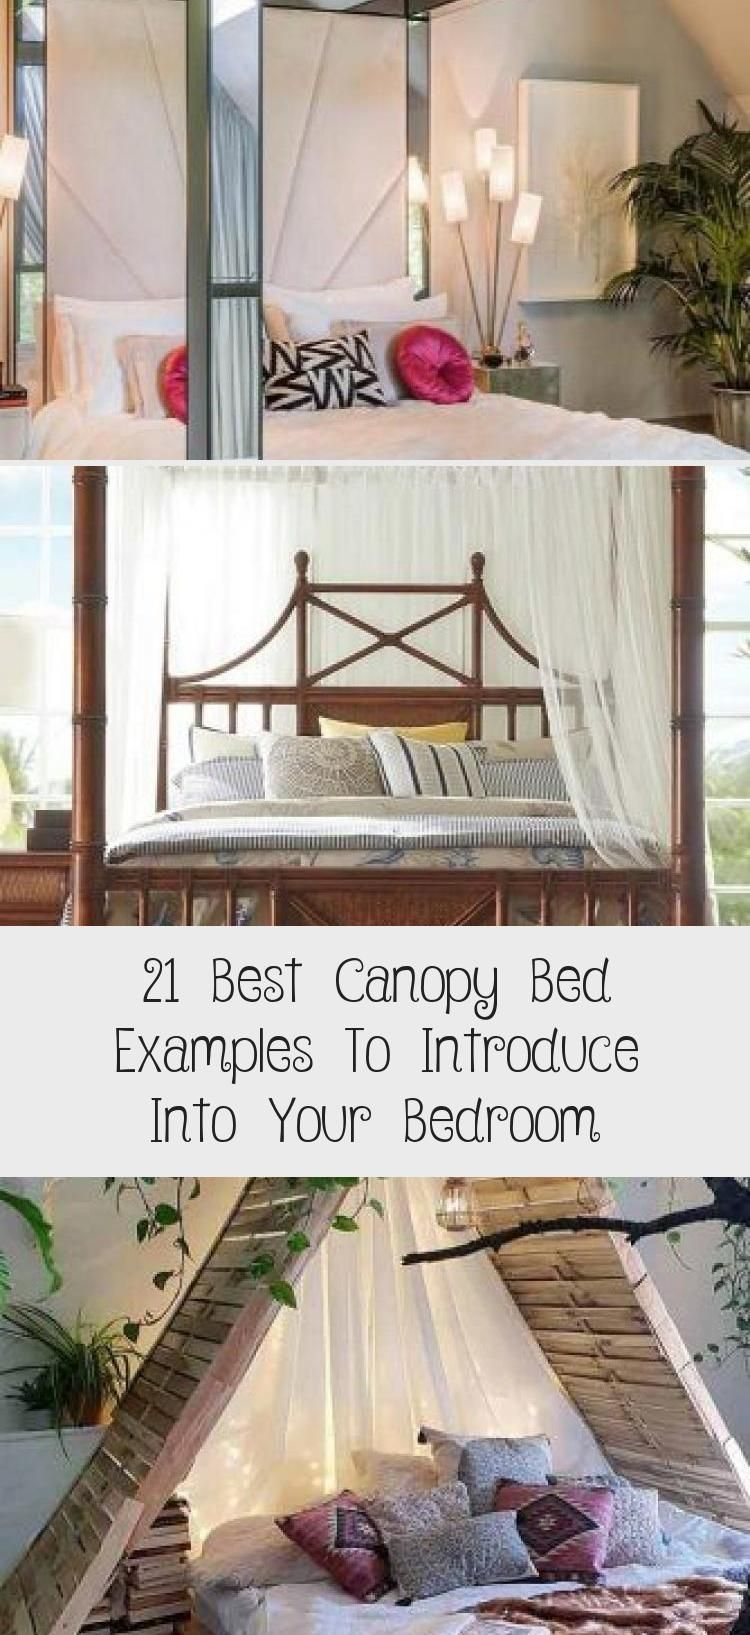 21 Best Canopy Bed Examples To Introduce Into Your Bedroom Boho Bedroom Design With Rustic Bed  Best canopy beds ideas modern and rustic girly and boho style with lights...